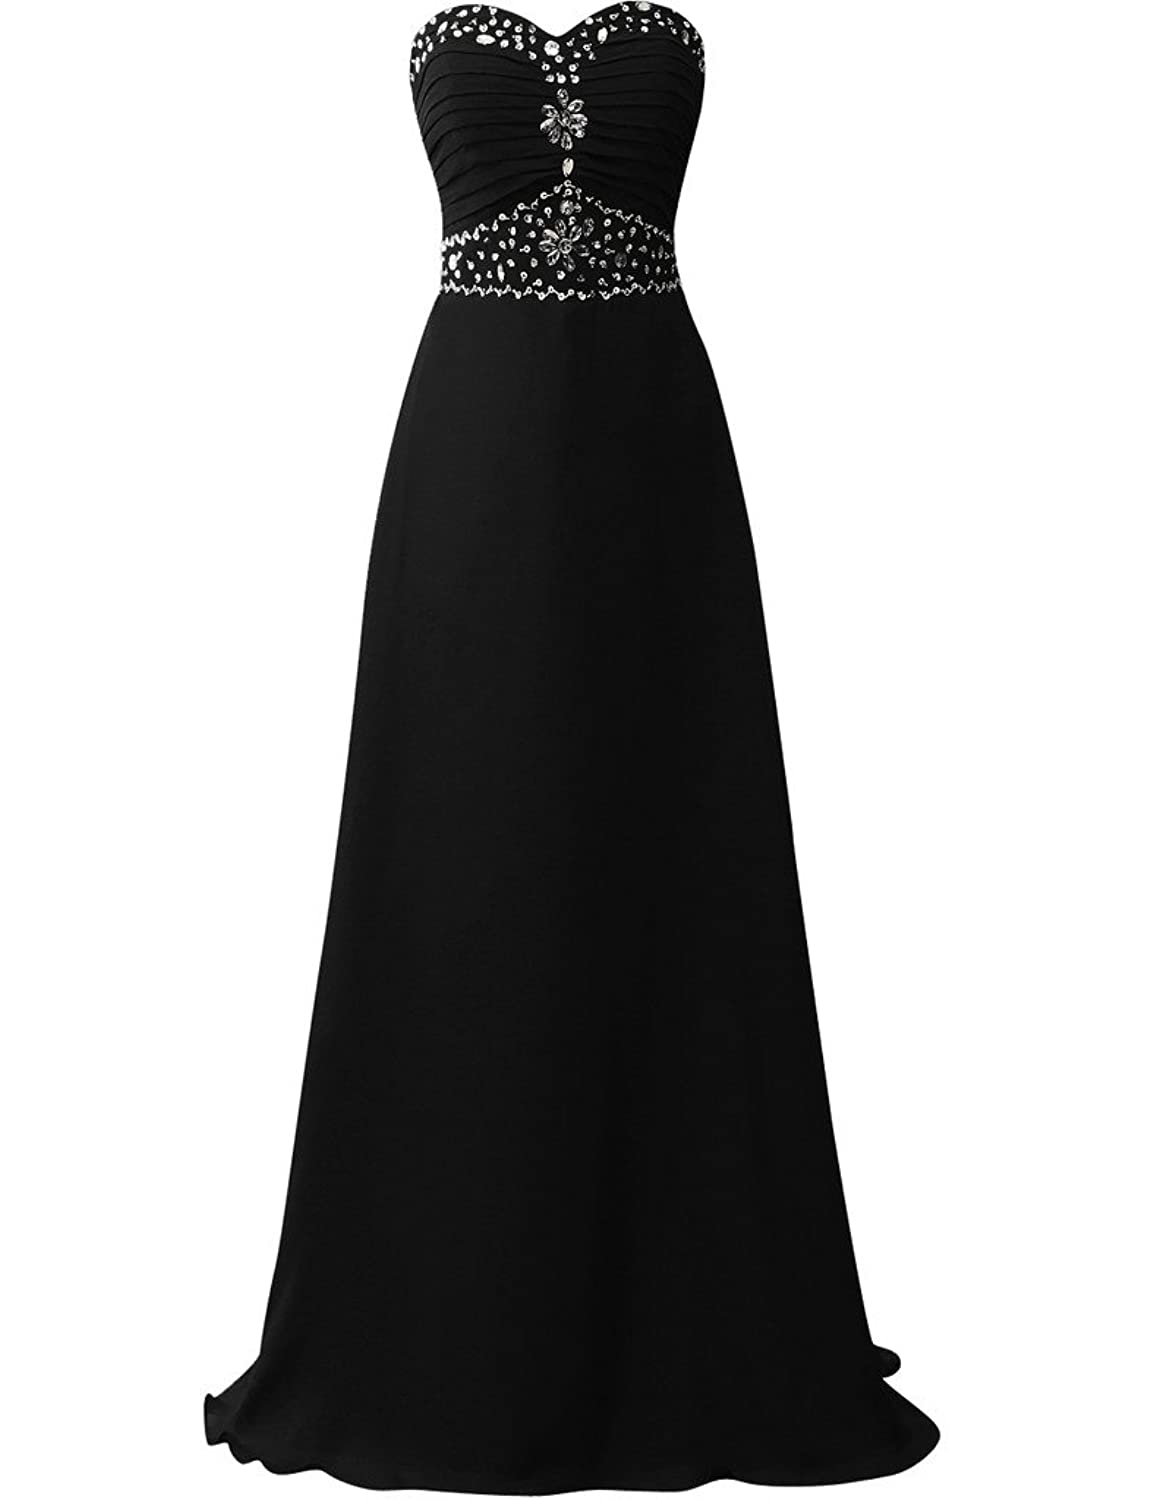 HUINI Strapless Beads Sequins Long Chiffon Prom Party Dresses Evening Formal Gowns